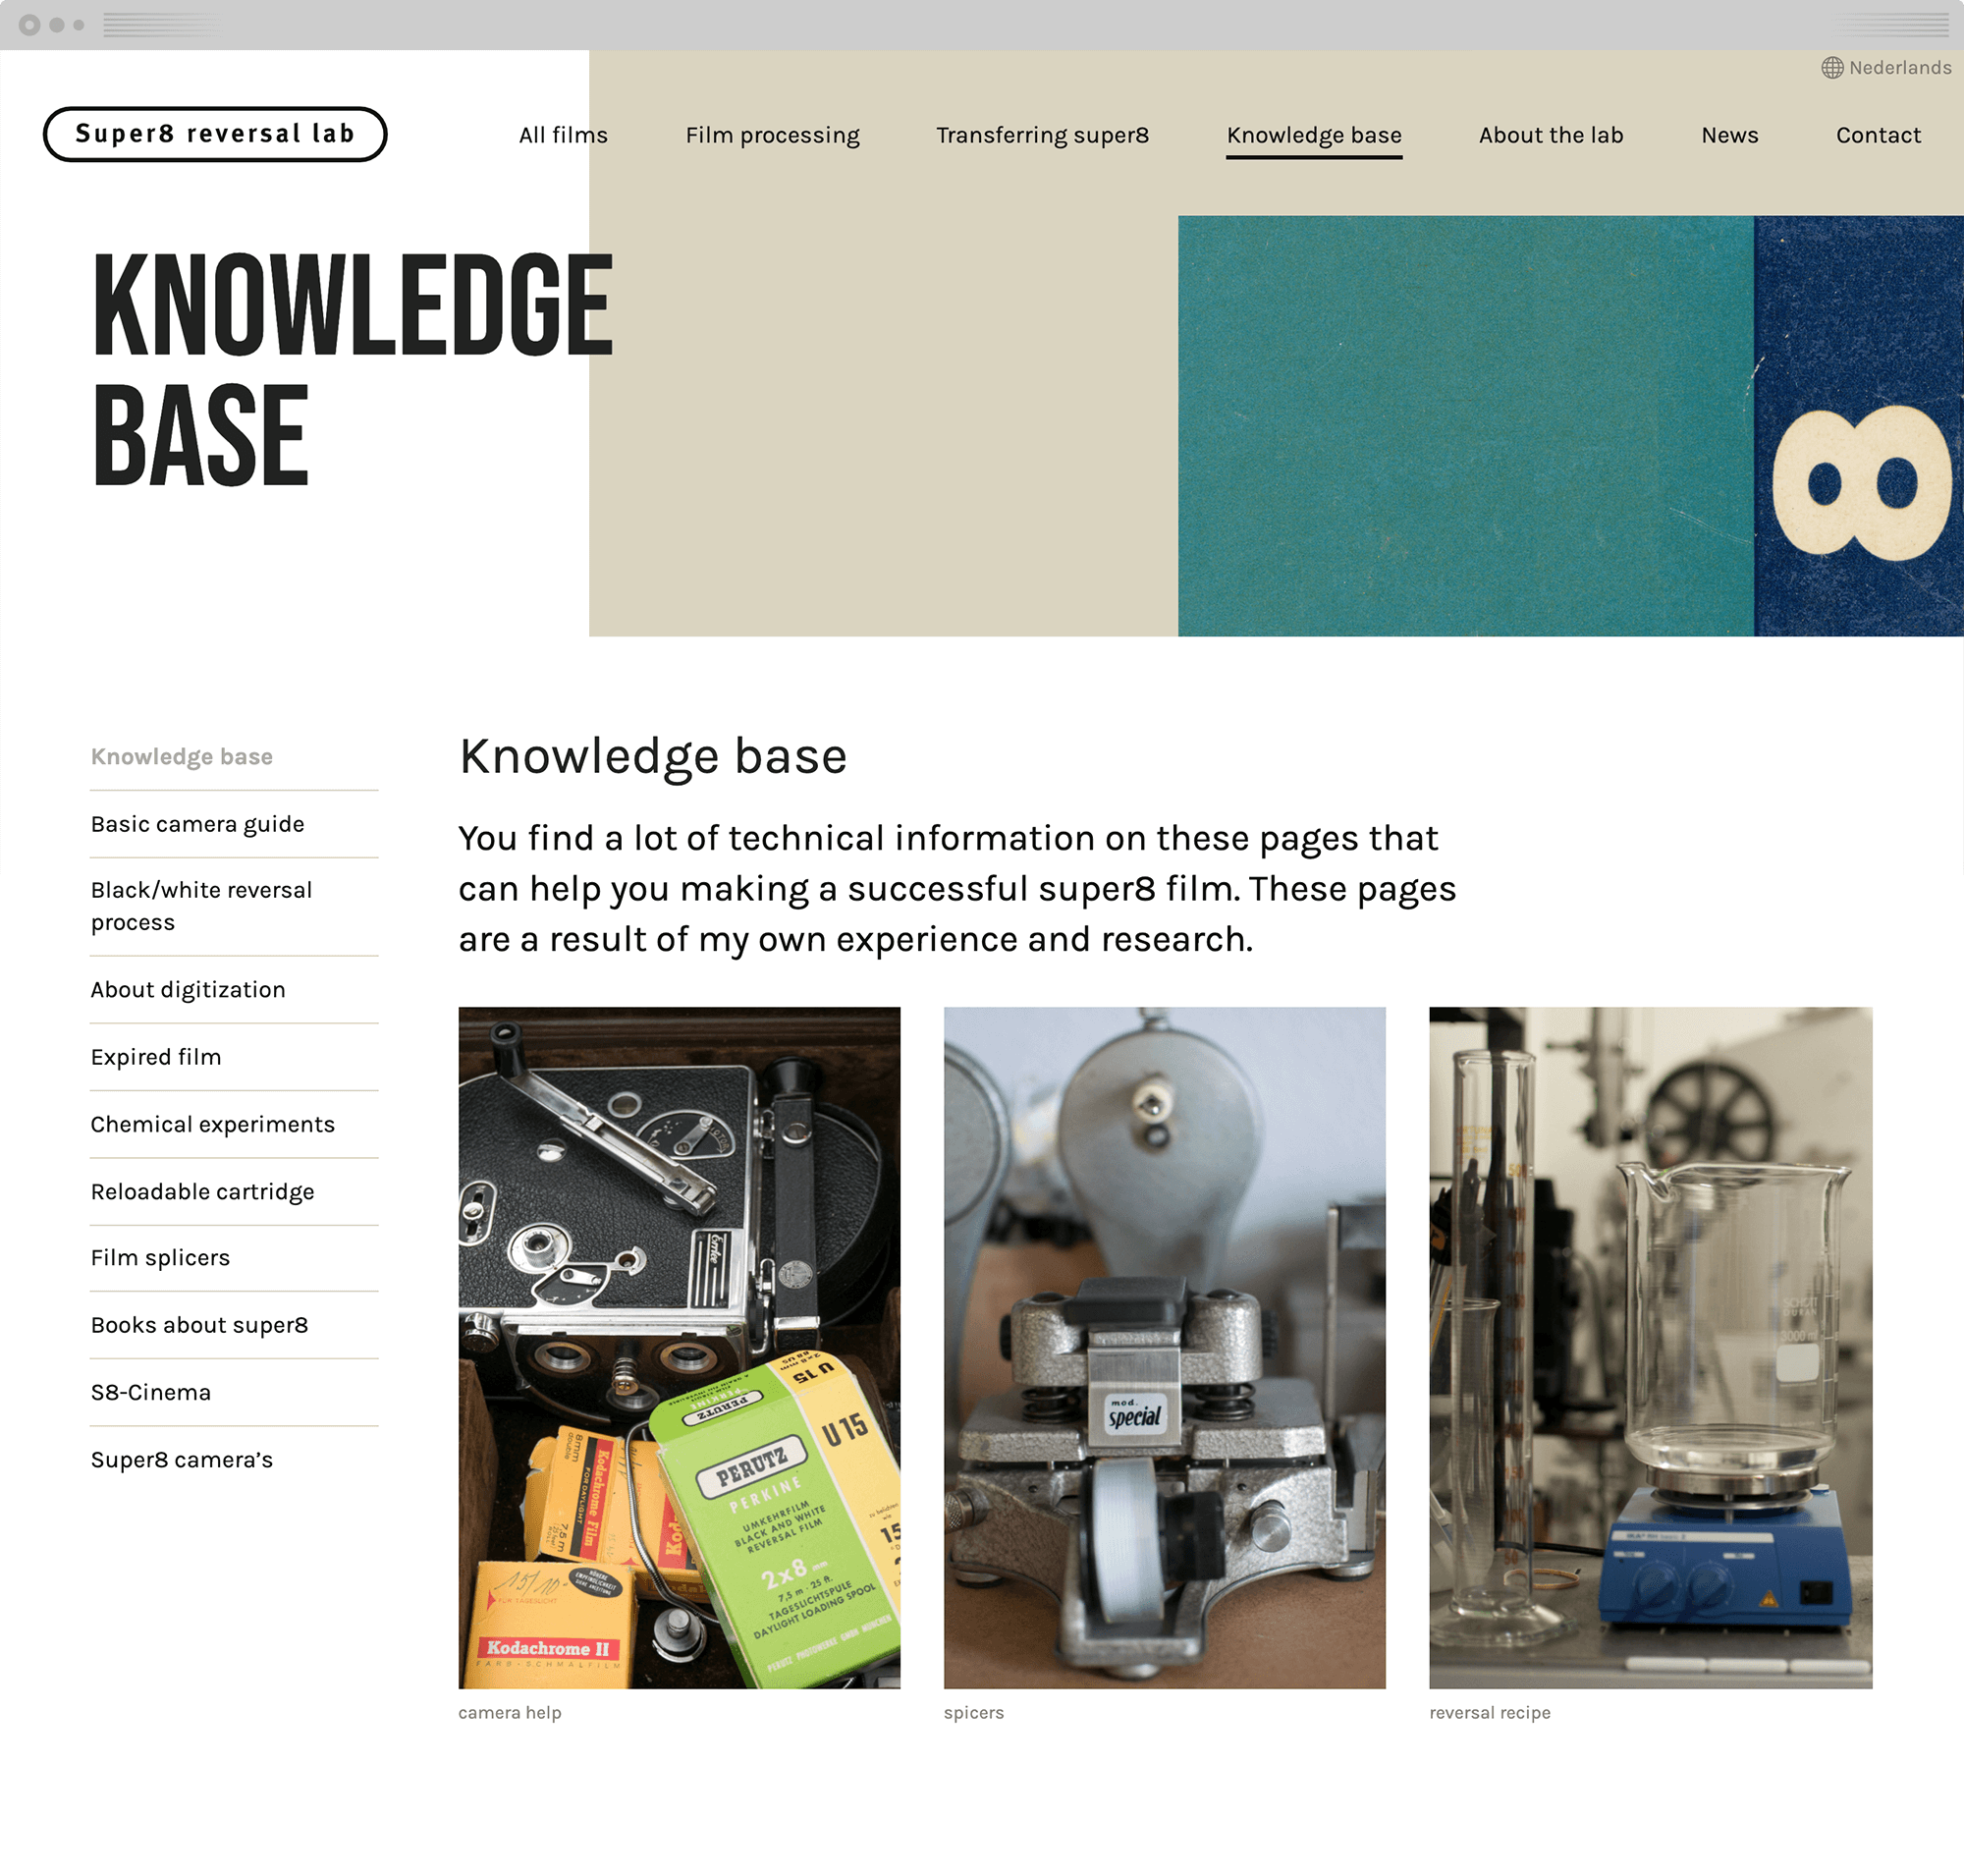 The knowledge base